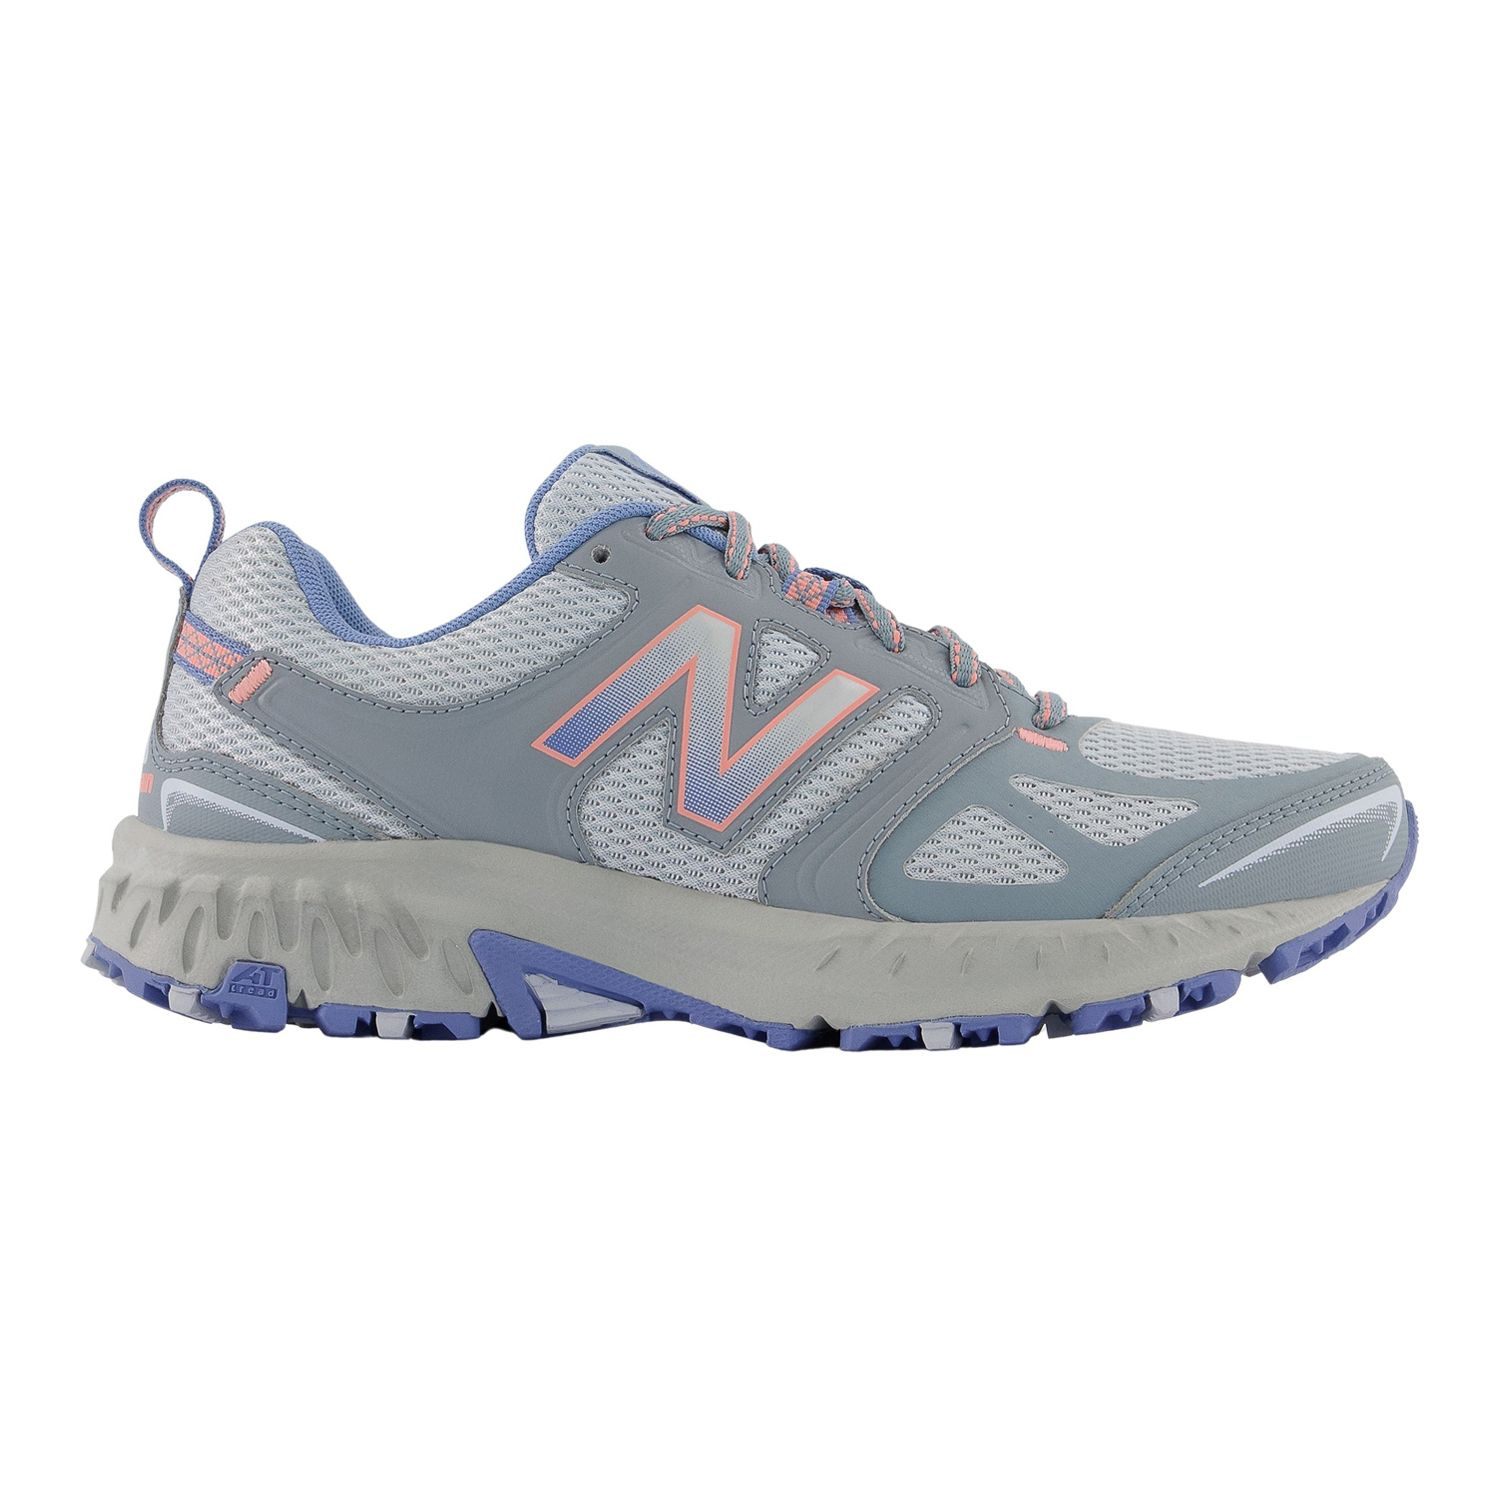 New Balance 412 v3 Women\u0027s Trail Running Shoes